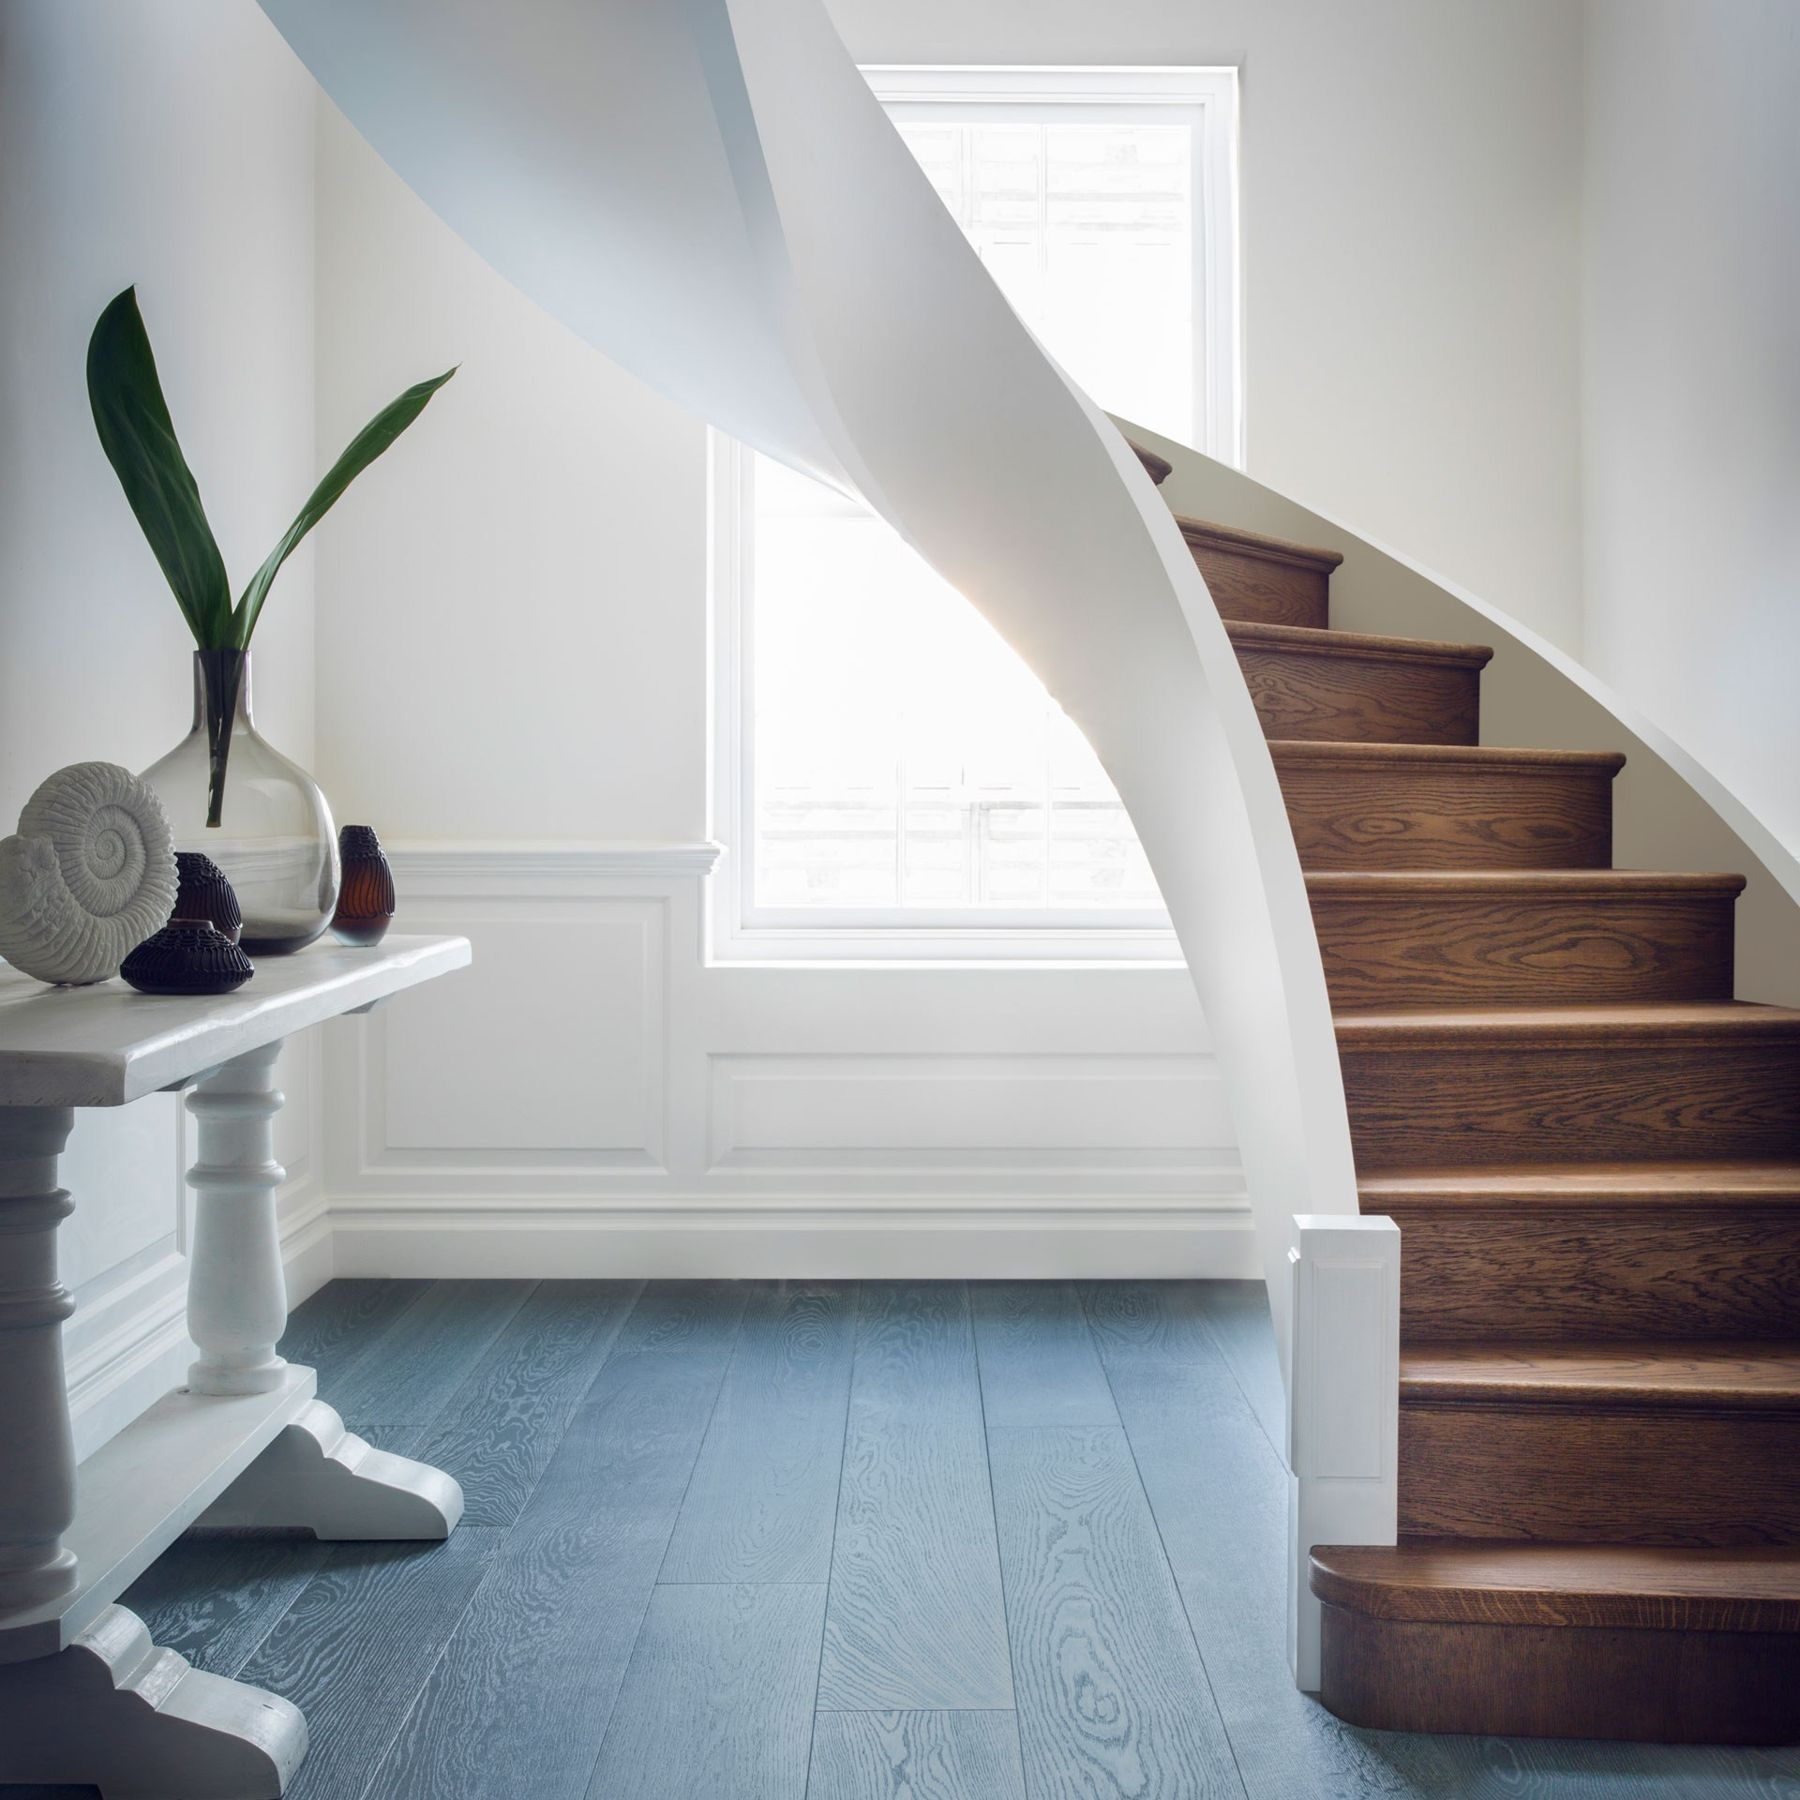 Staircase Ideas For Your Hallway That Will Really Make An: Staircase Design, Beautiful Home Designs